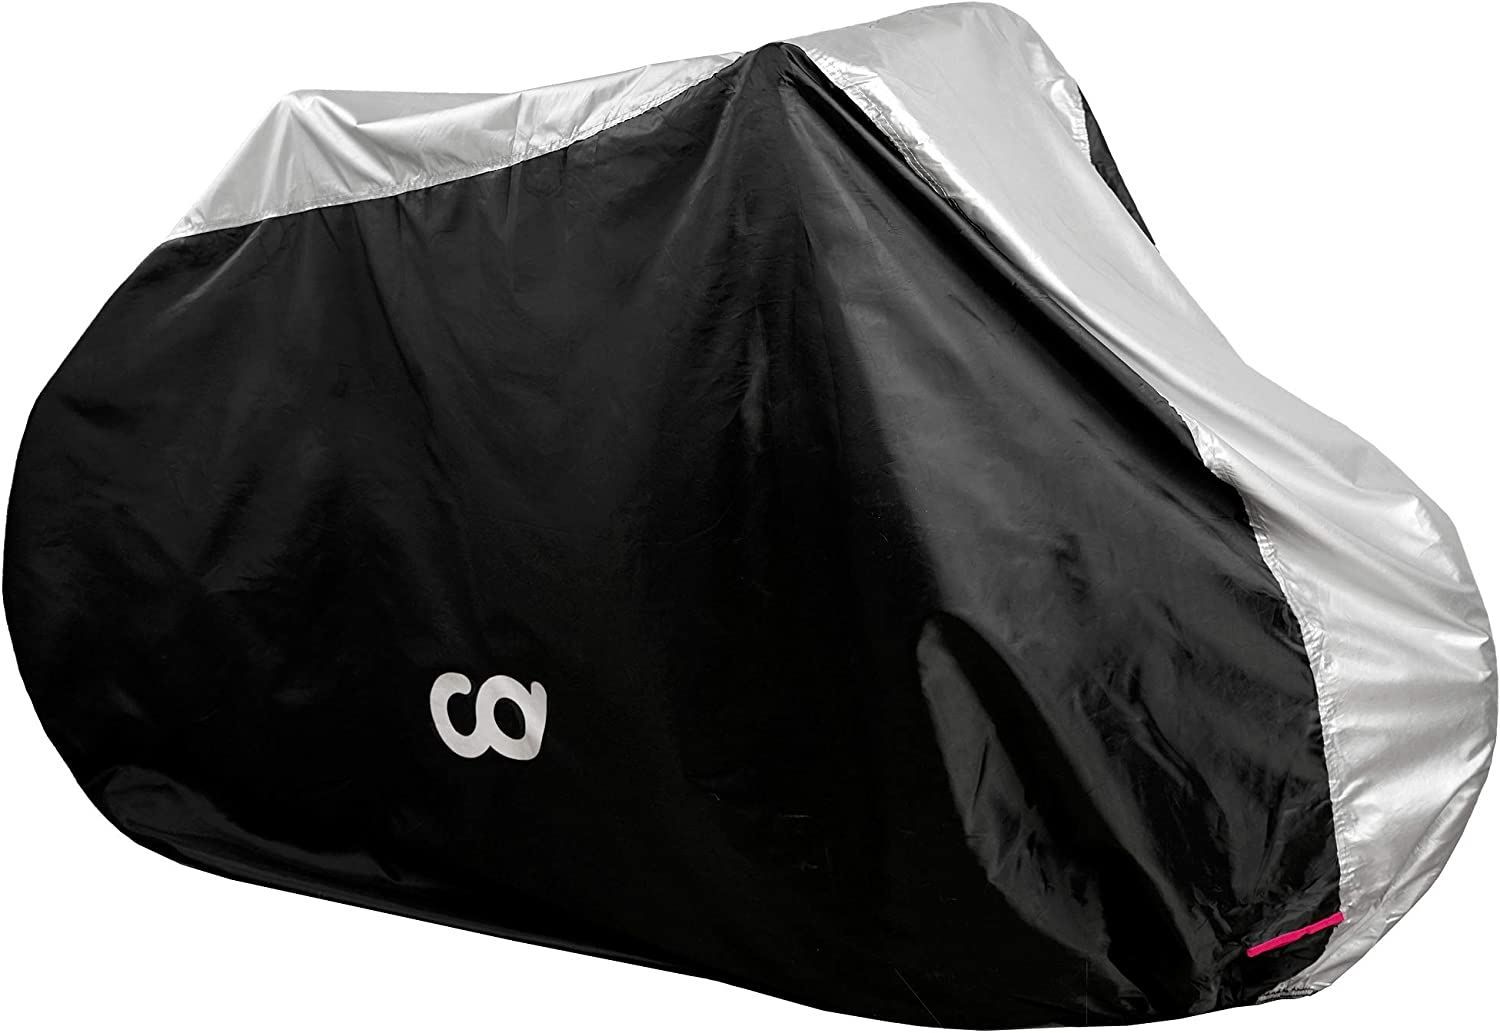 Electric /& Road Bikes Bike Cover for Outdoor Bicycle Storage 1 Bike Water Repellent Weather Conditions for Mountain 1 or 2 Bikes or 2 or 3 Bikes -190T Polyester Material Dust Protection